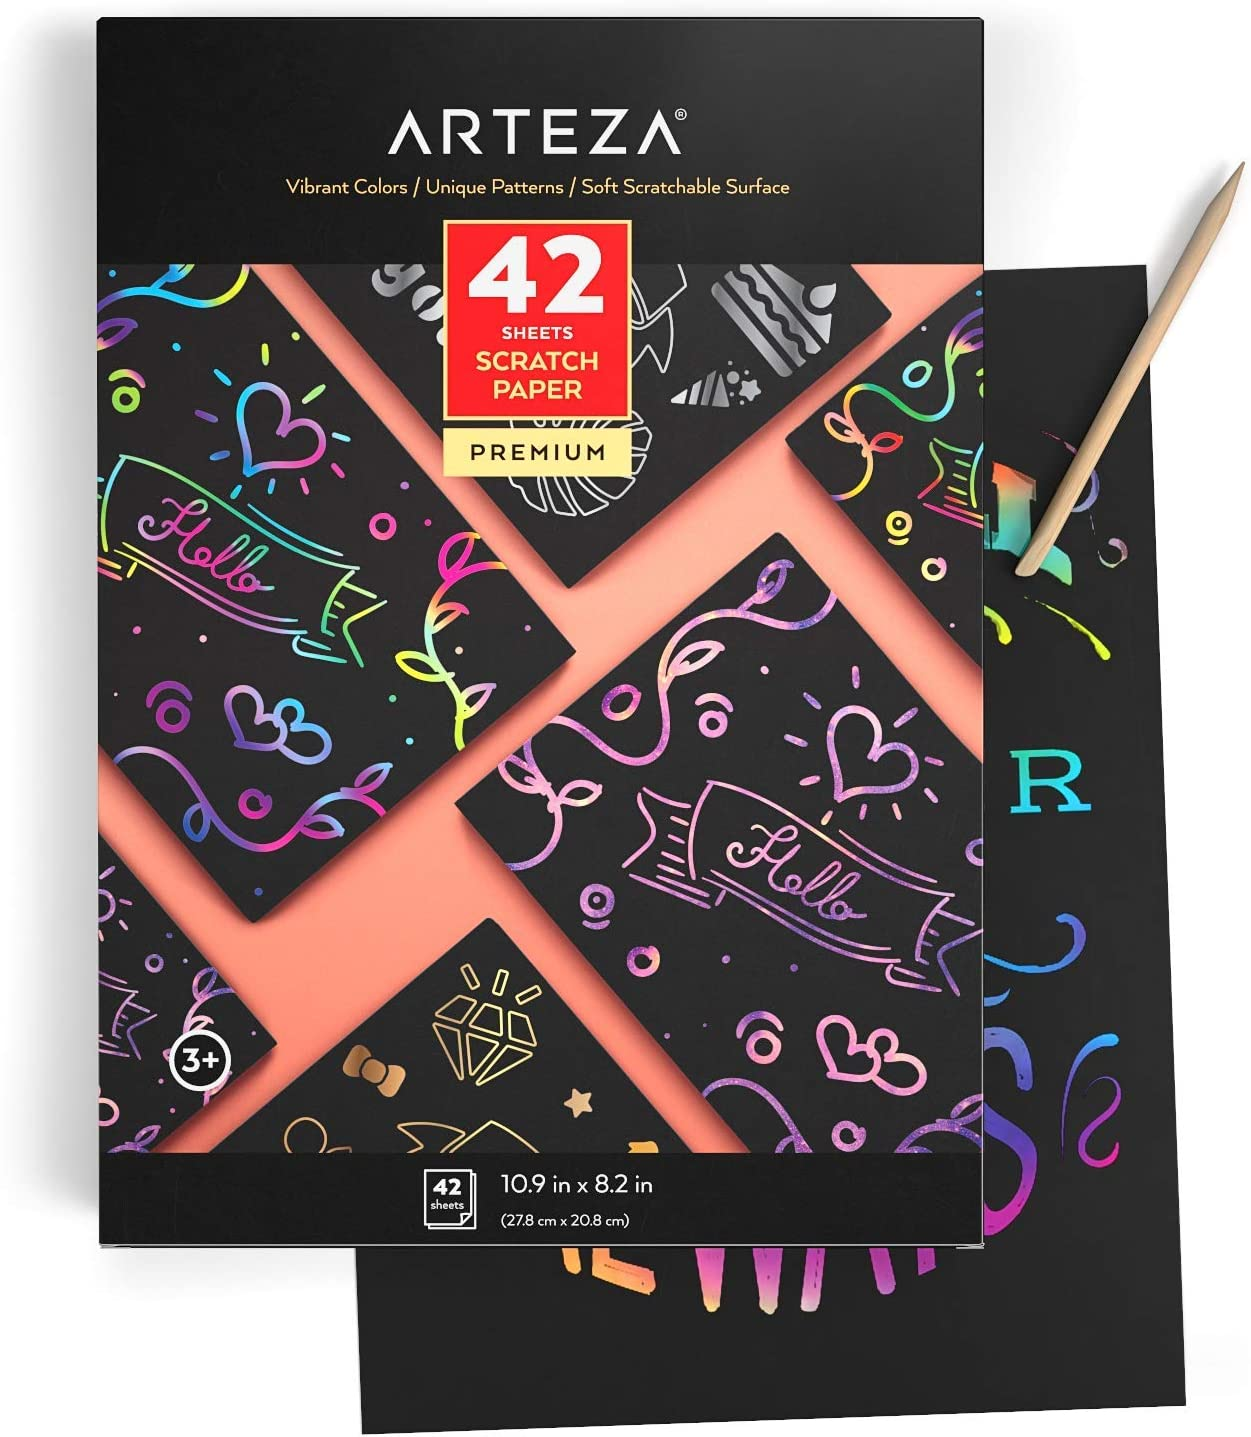 10.9x8.2 inch Sheets ARTEZA Scratch Paper Set of 42 for Kids 4 Post Cards Art Set Include: 4 Unique Patterns Art /& Craft Classrooms and DIY Projects 4 Stencils 4 Scratchers